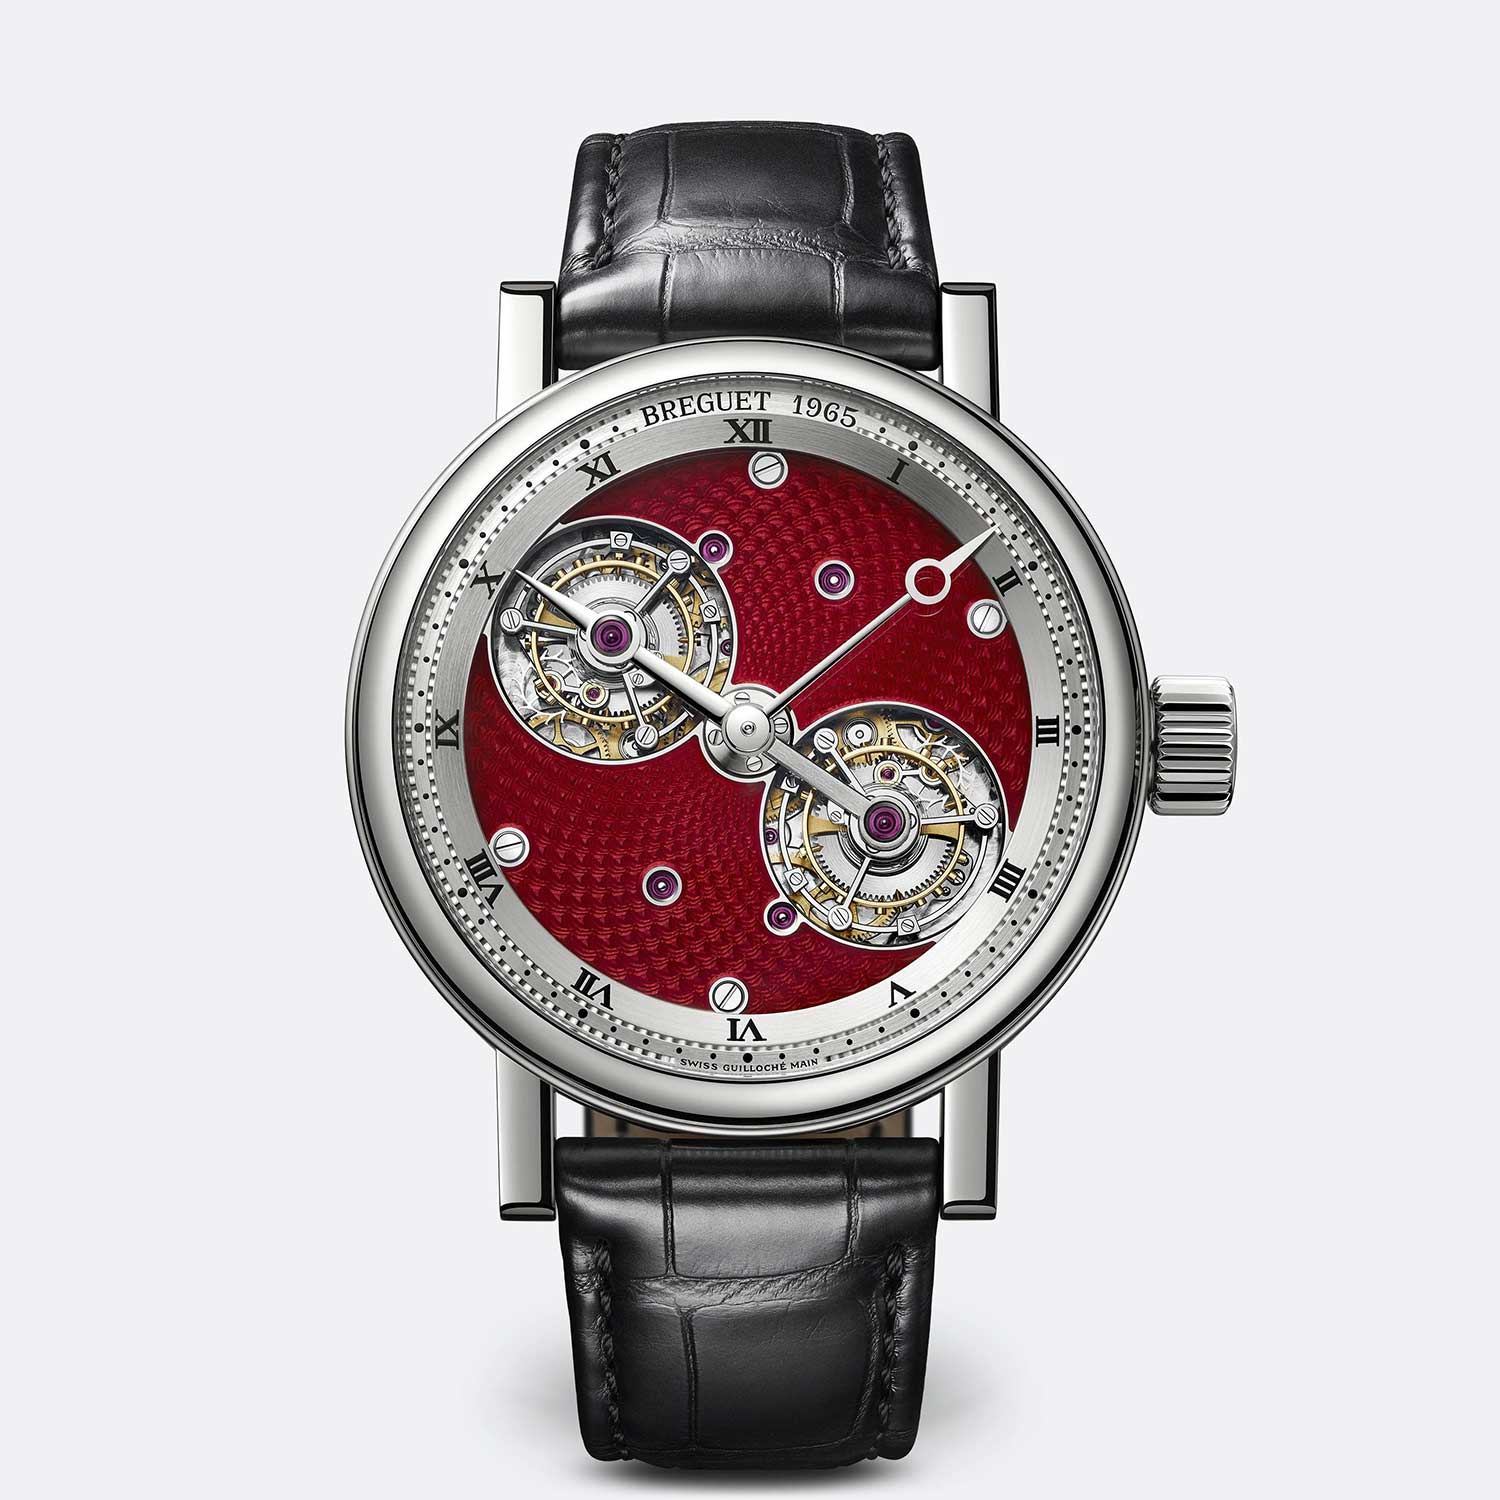 Breguet Classique Double Tourbillon 5347 with a Guilloché Main and translucent red enamel dial